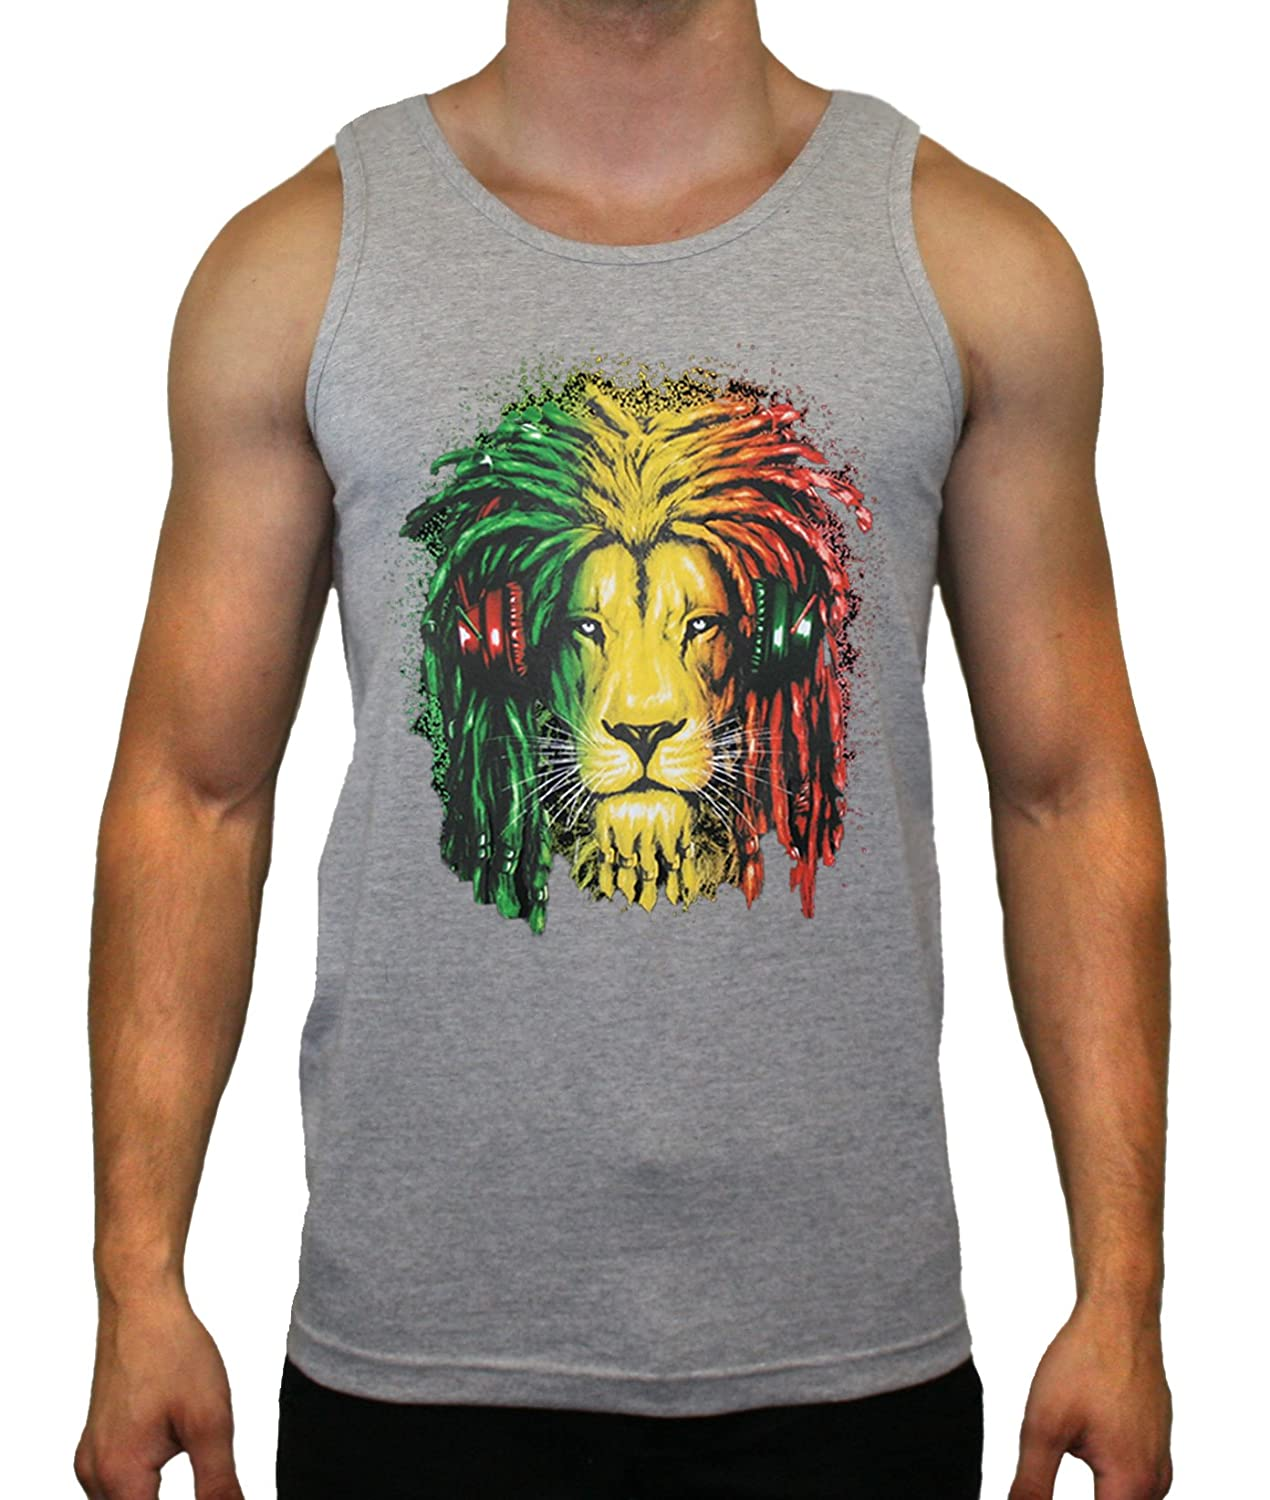 Qualifornia Rasta Lion Designs Tank Top for Man